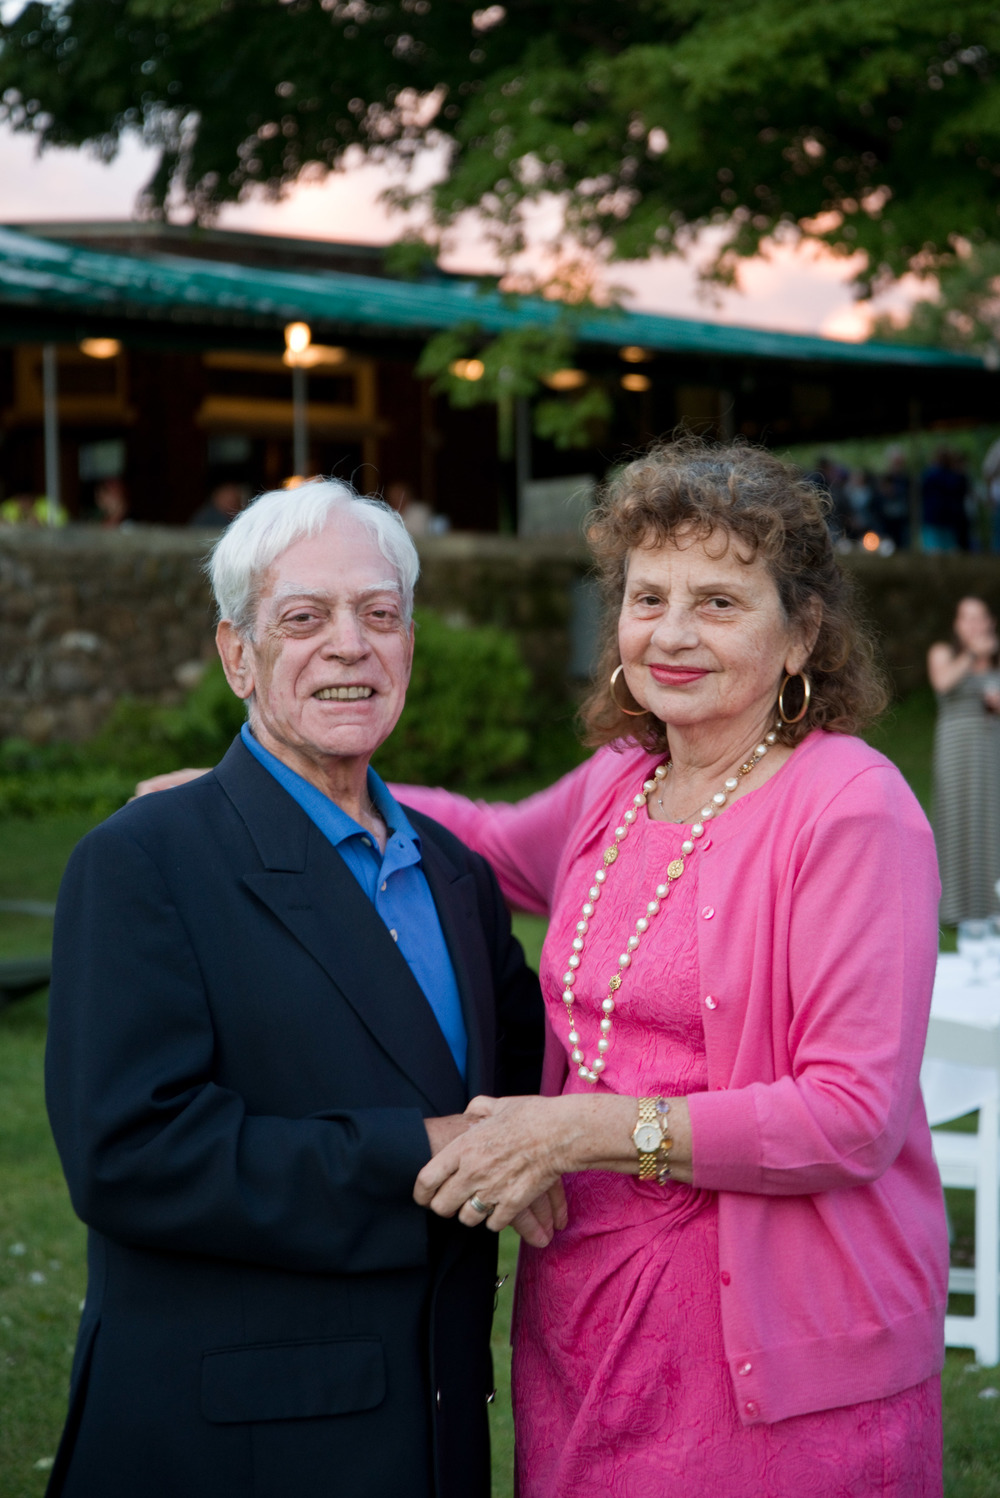 Innkeepers for 27 years, Georgette & Albert Levis